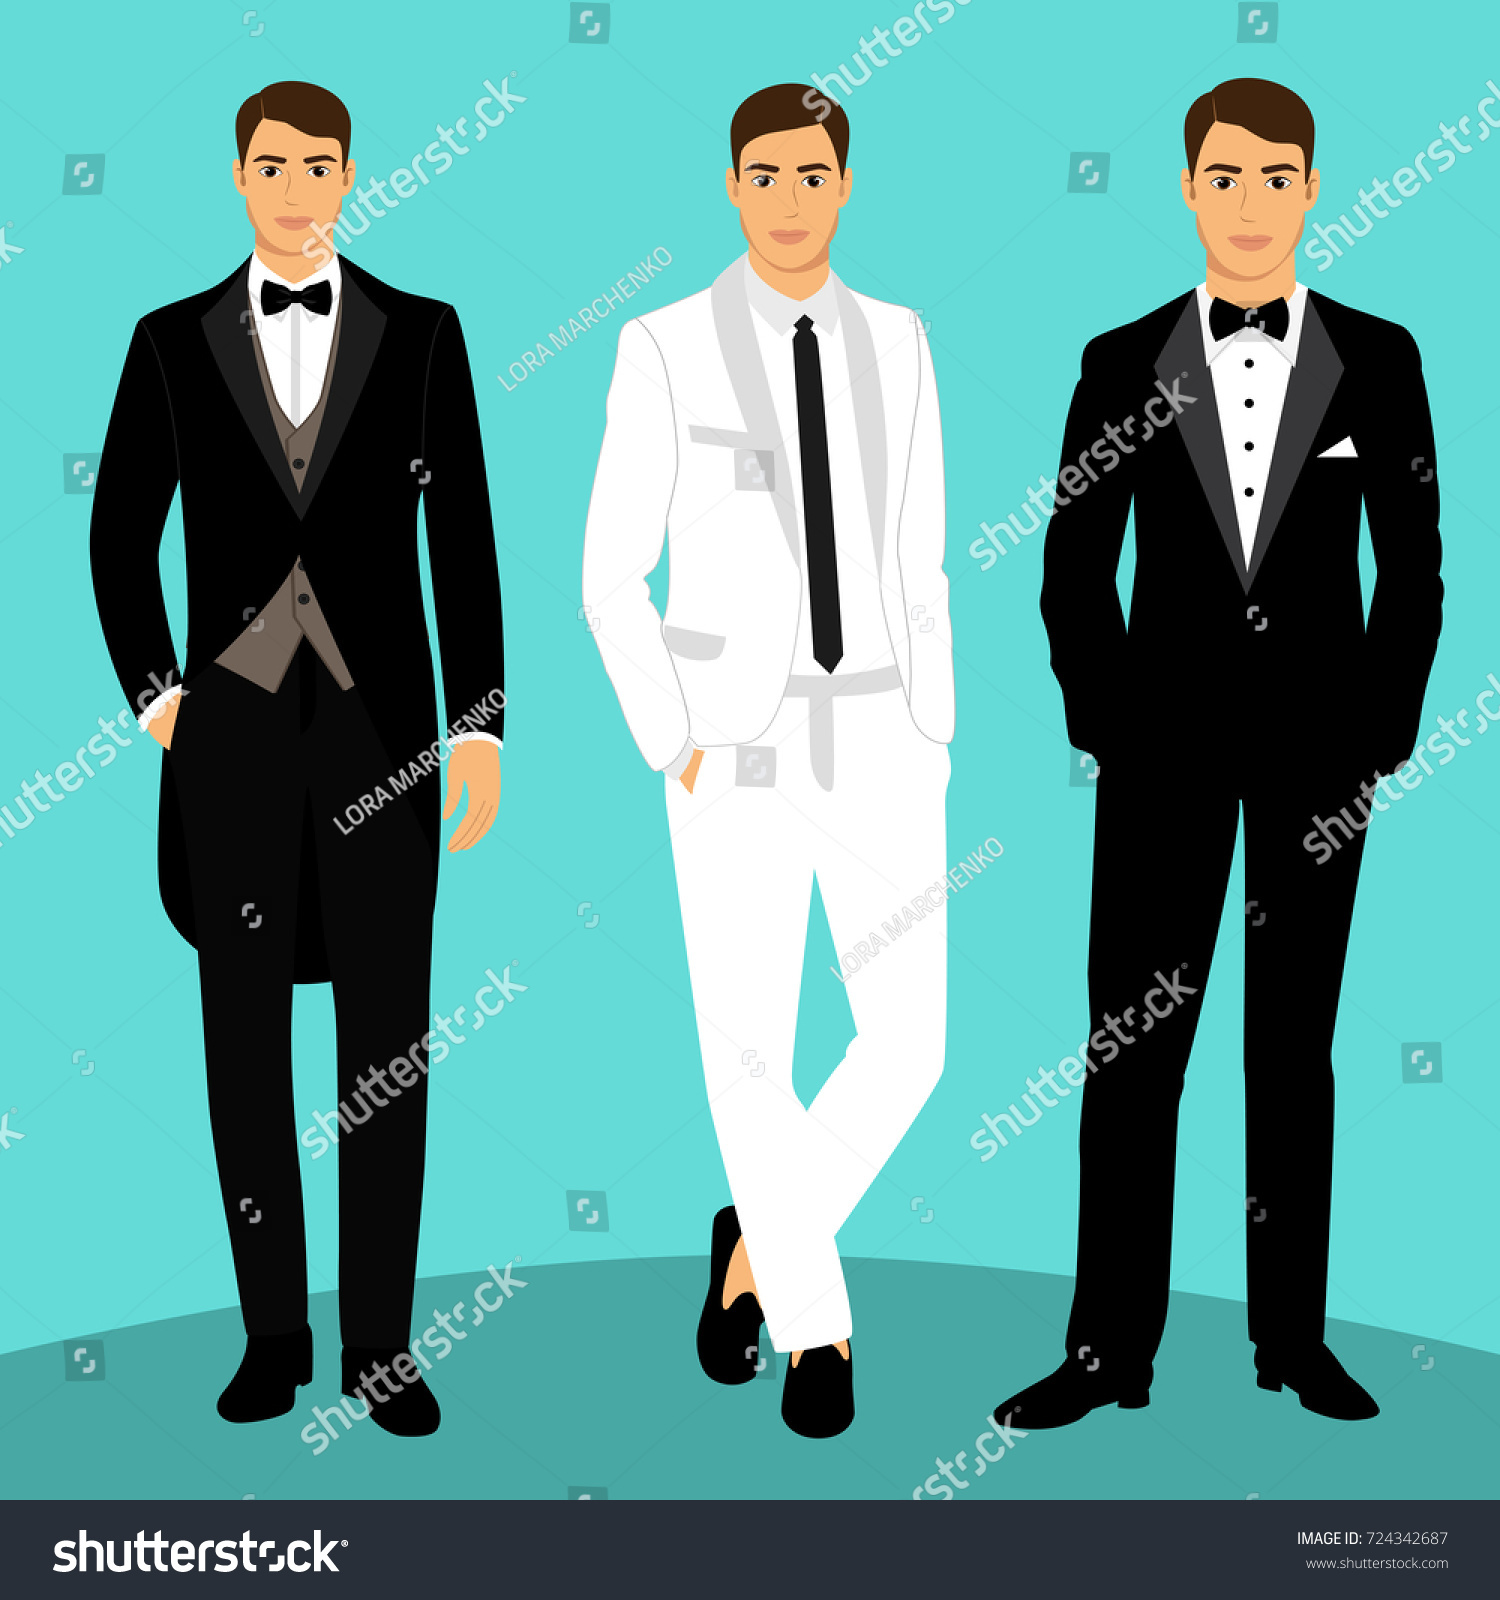 Wedding Mens Suit Tuxedo Collection Groom Stock Vector (2018 ...